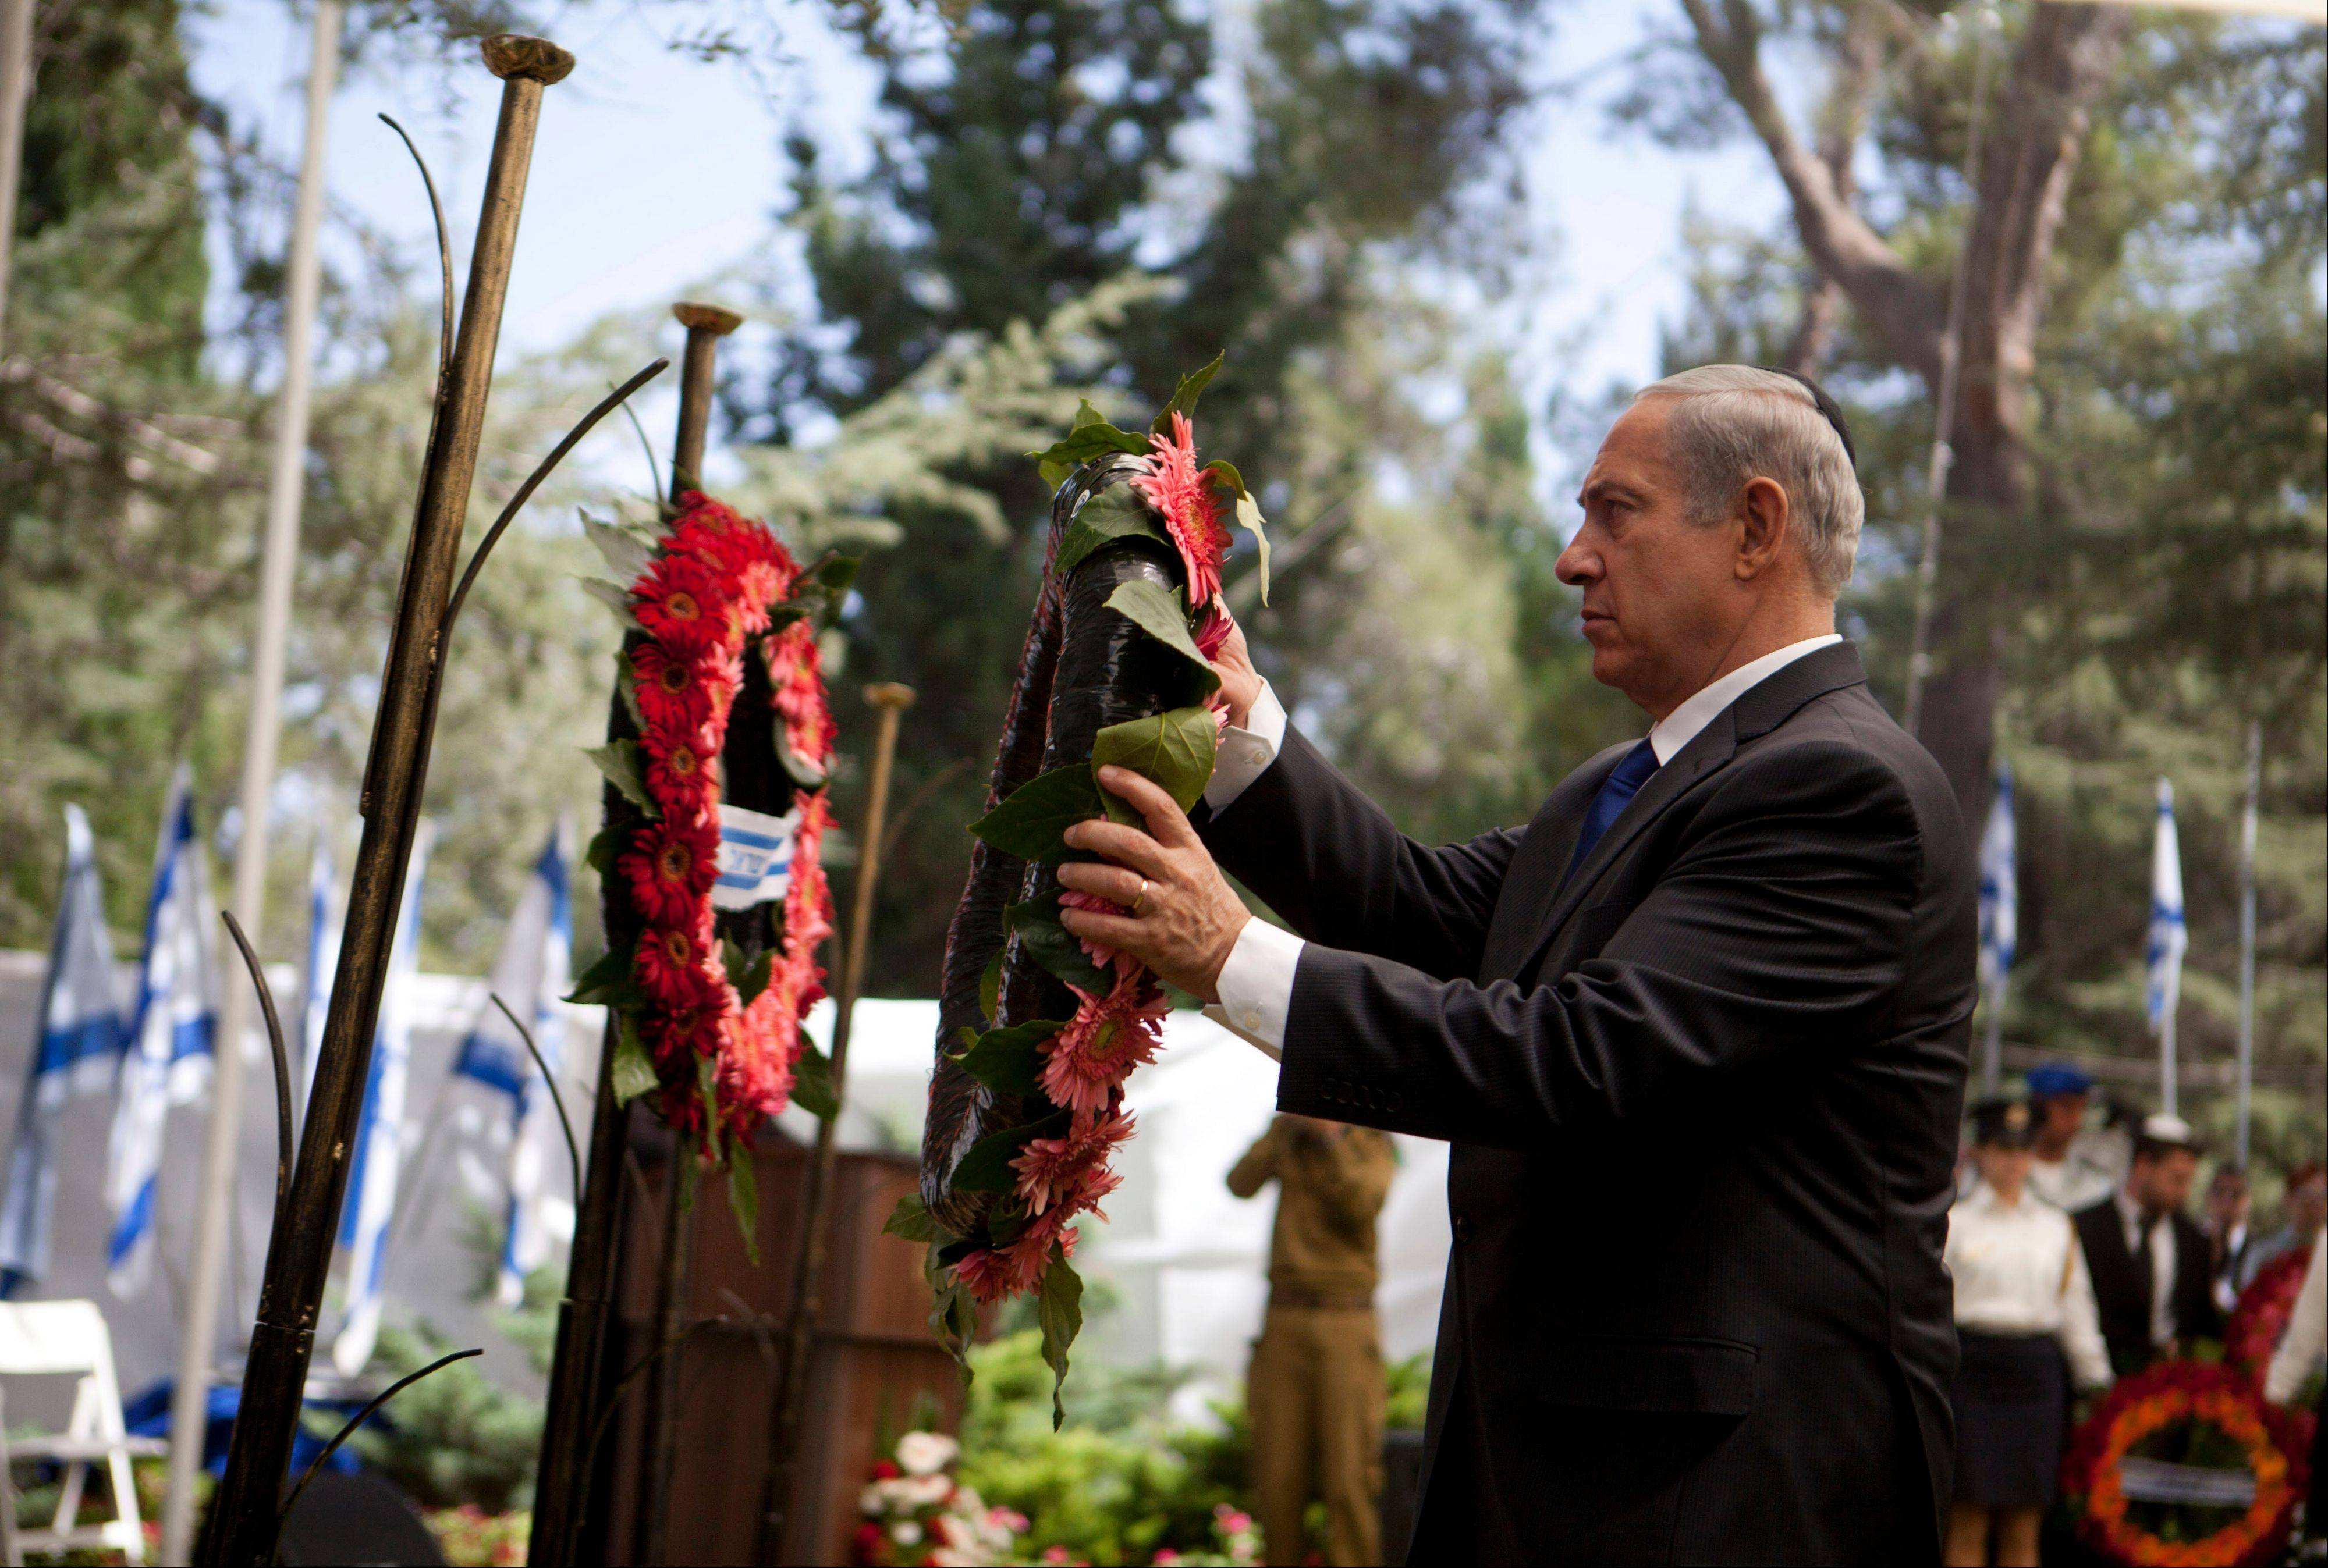 Israeli Prime Minister Benjamin Netanyahu hangs a wreath on a pole during the state memorial ceremony for soldiers, fallen during the 1973 Arab-Israel War, which Israelis call the Yom Kippur War, in Jerusalem, Sunday, Sept. 15, 2013. Israeli leaders expressed cautious hope Sunday about a U.S.-Russia agreement that would require Syria to identify and eliminate its chemical weapons by mid-2014, as U.S. Secretary of State John Kerry arrived in the region to discuss the deal.